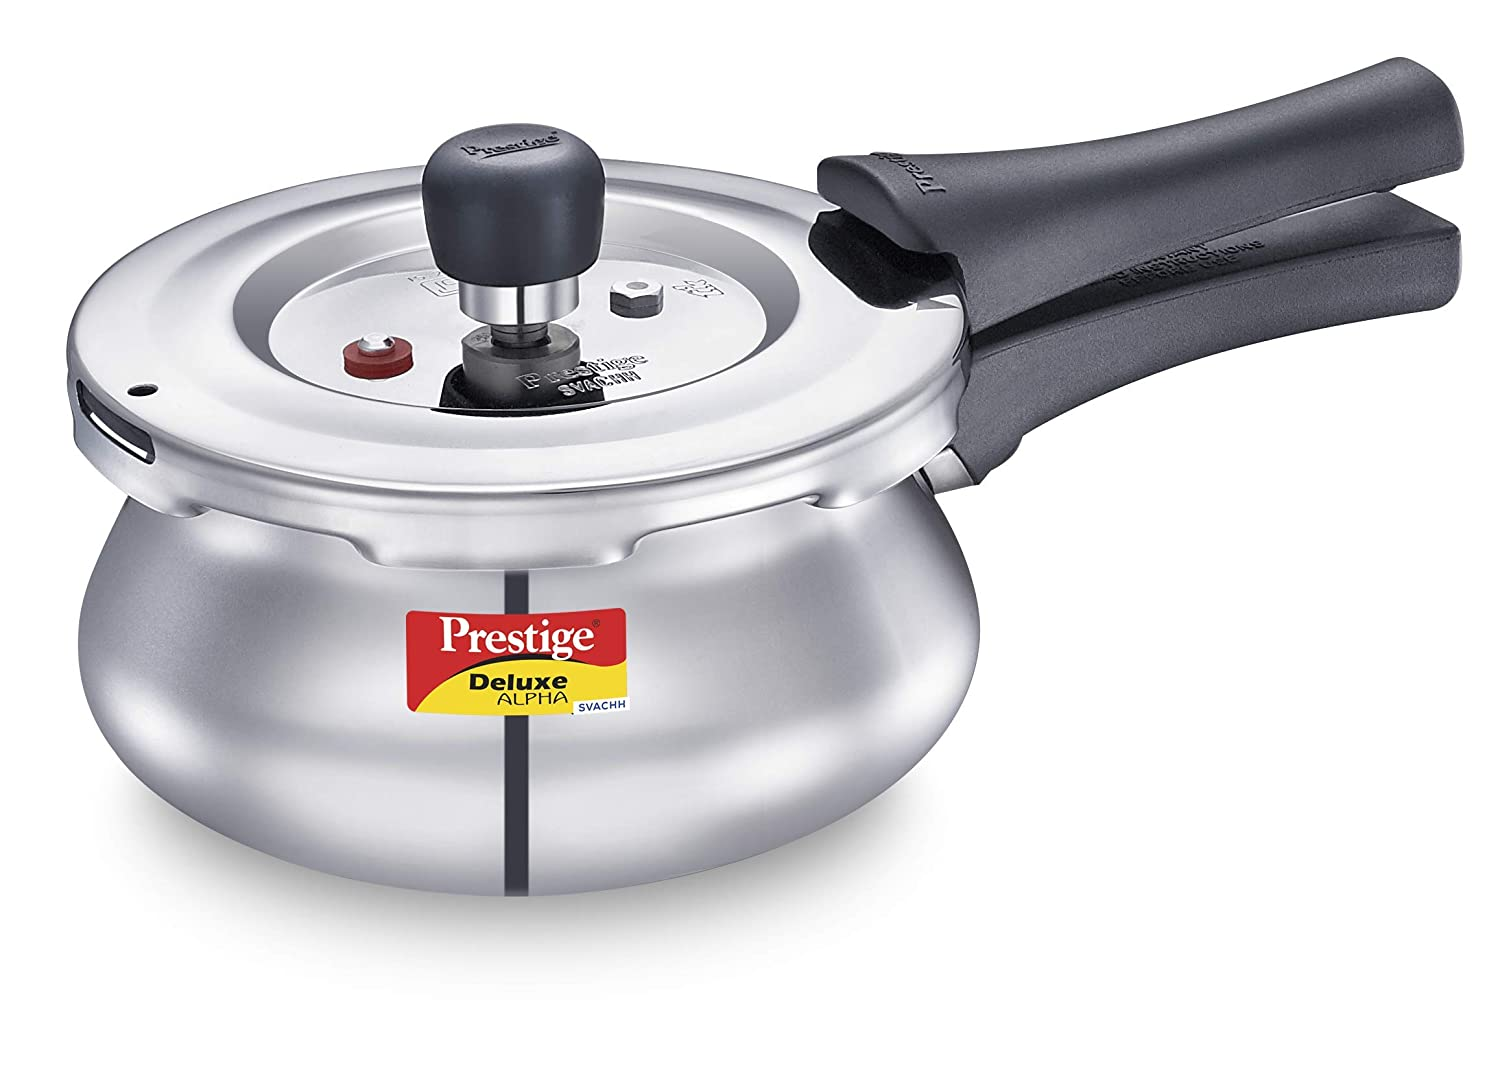 Prestige Deluxe Alpha Stainless Steel Pressure Handi with Glass Lid, 1.5 Litres,...